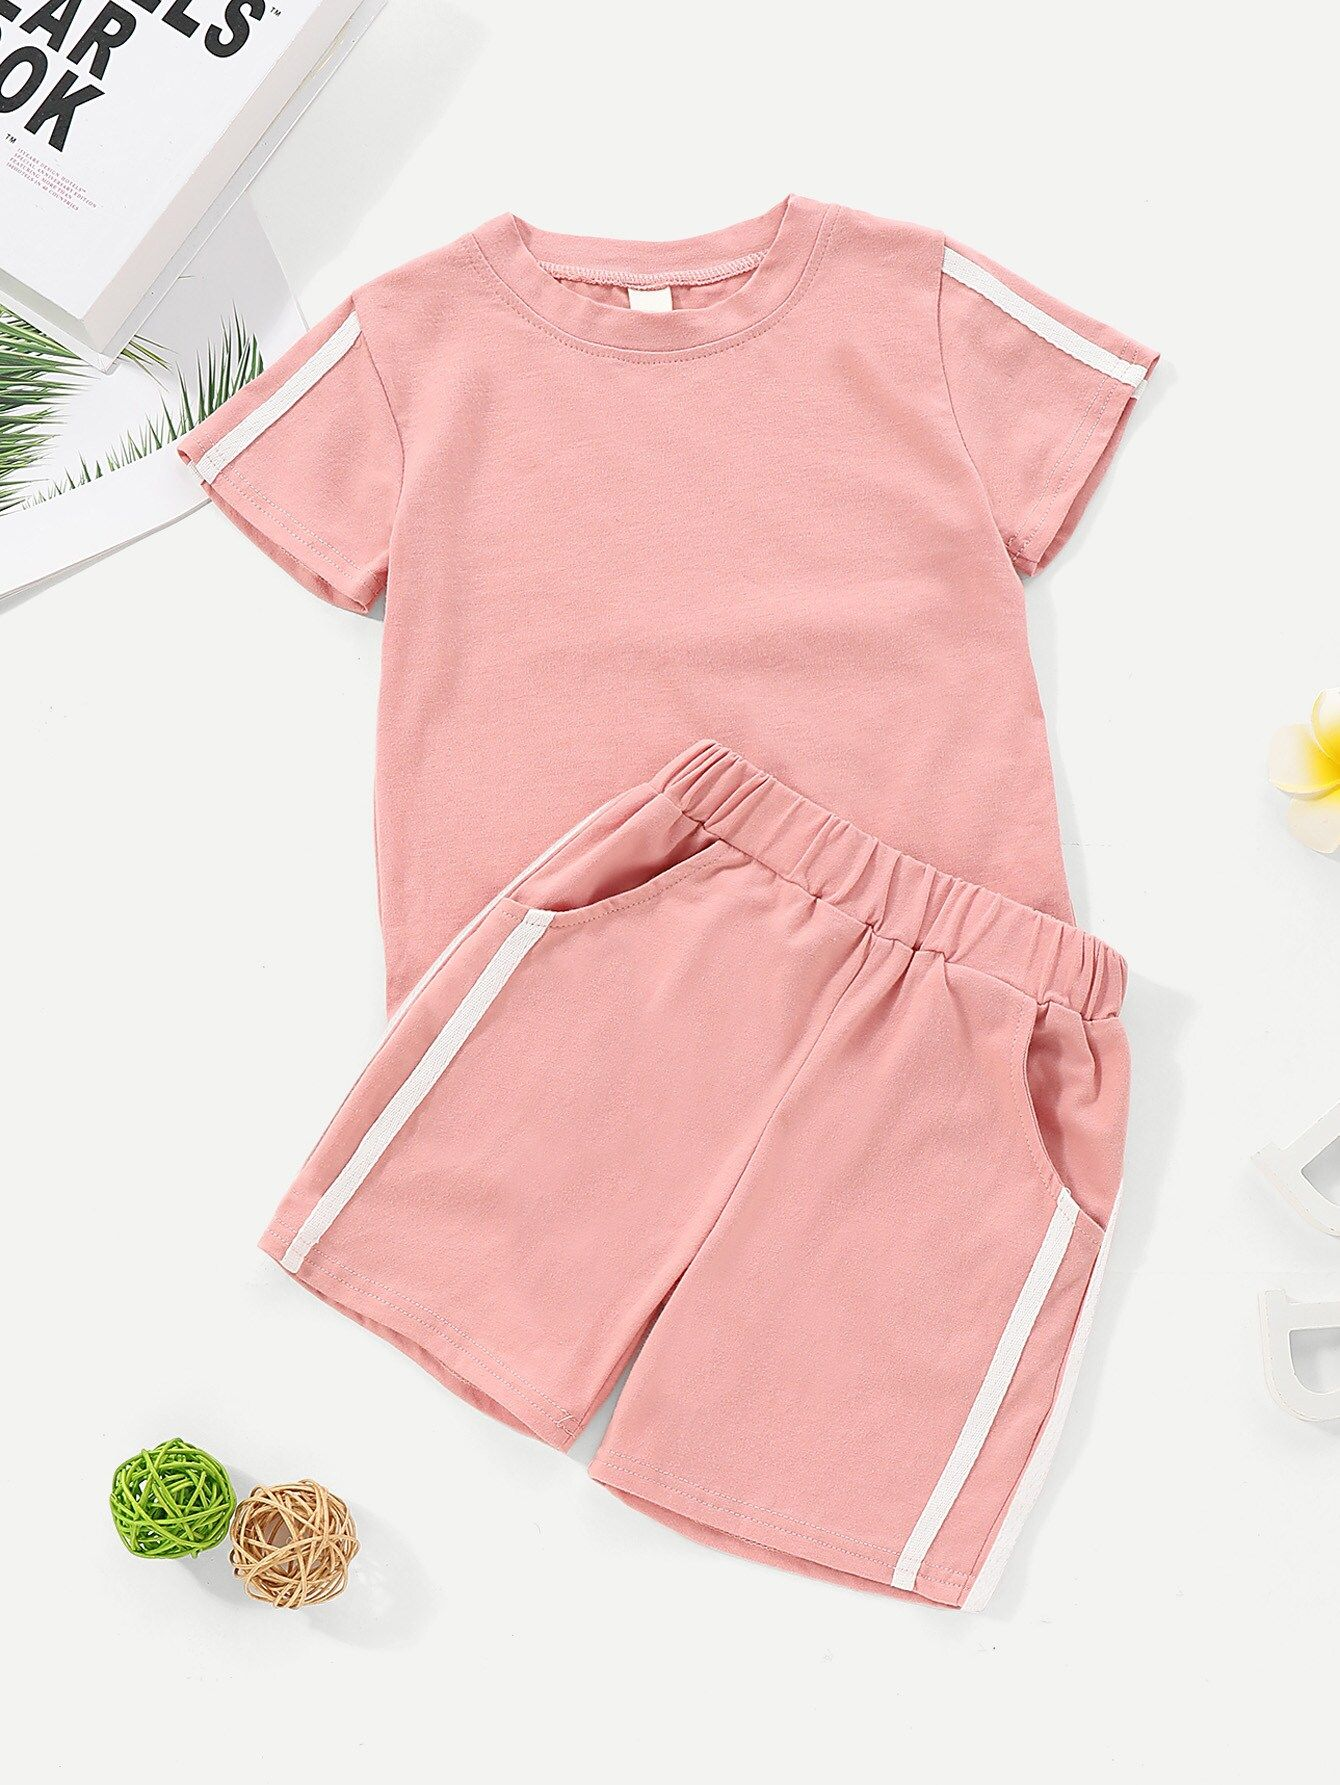 Toddler Girls Contrast Tape Tee With Shorts #toddlershorts